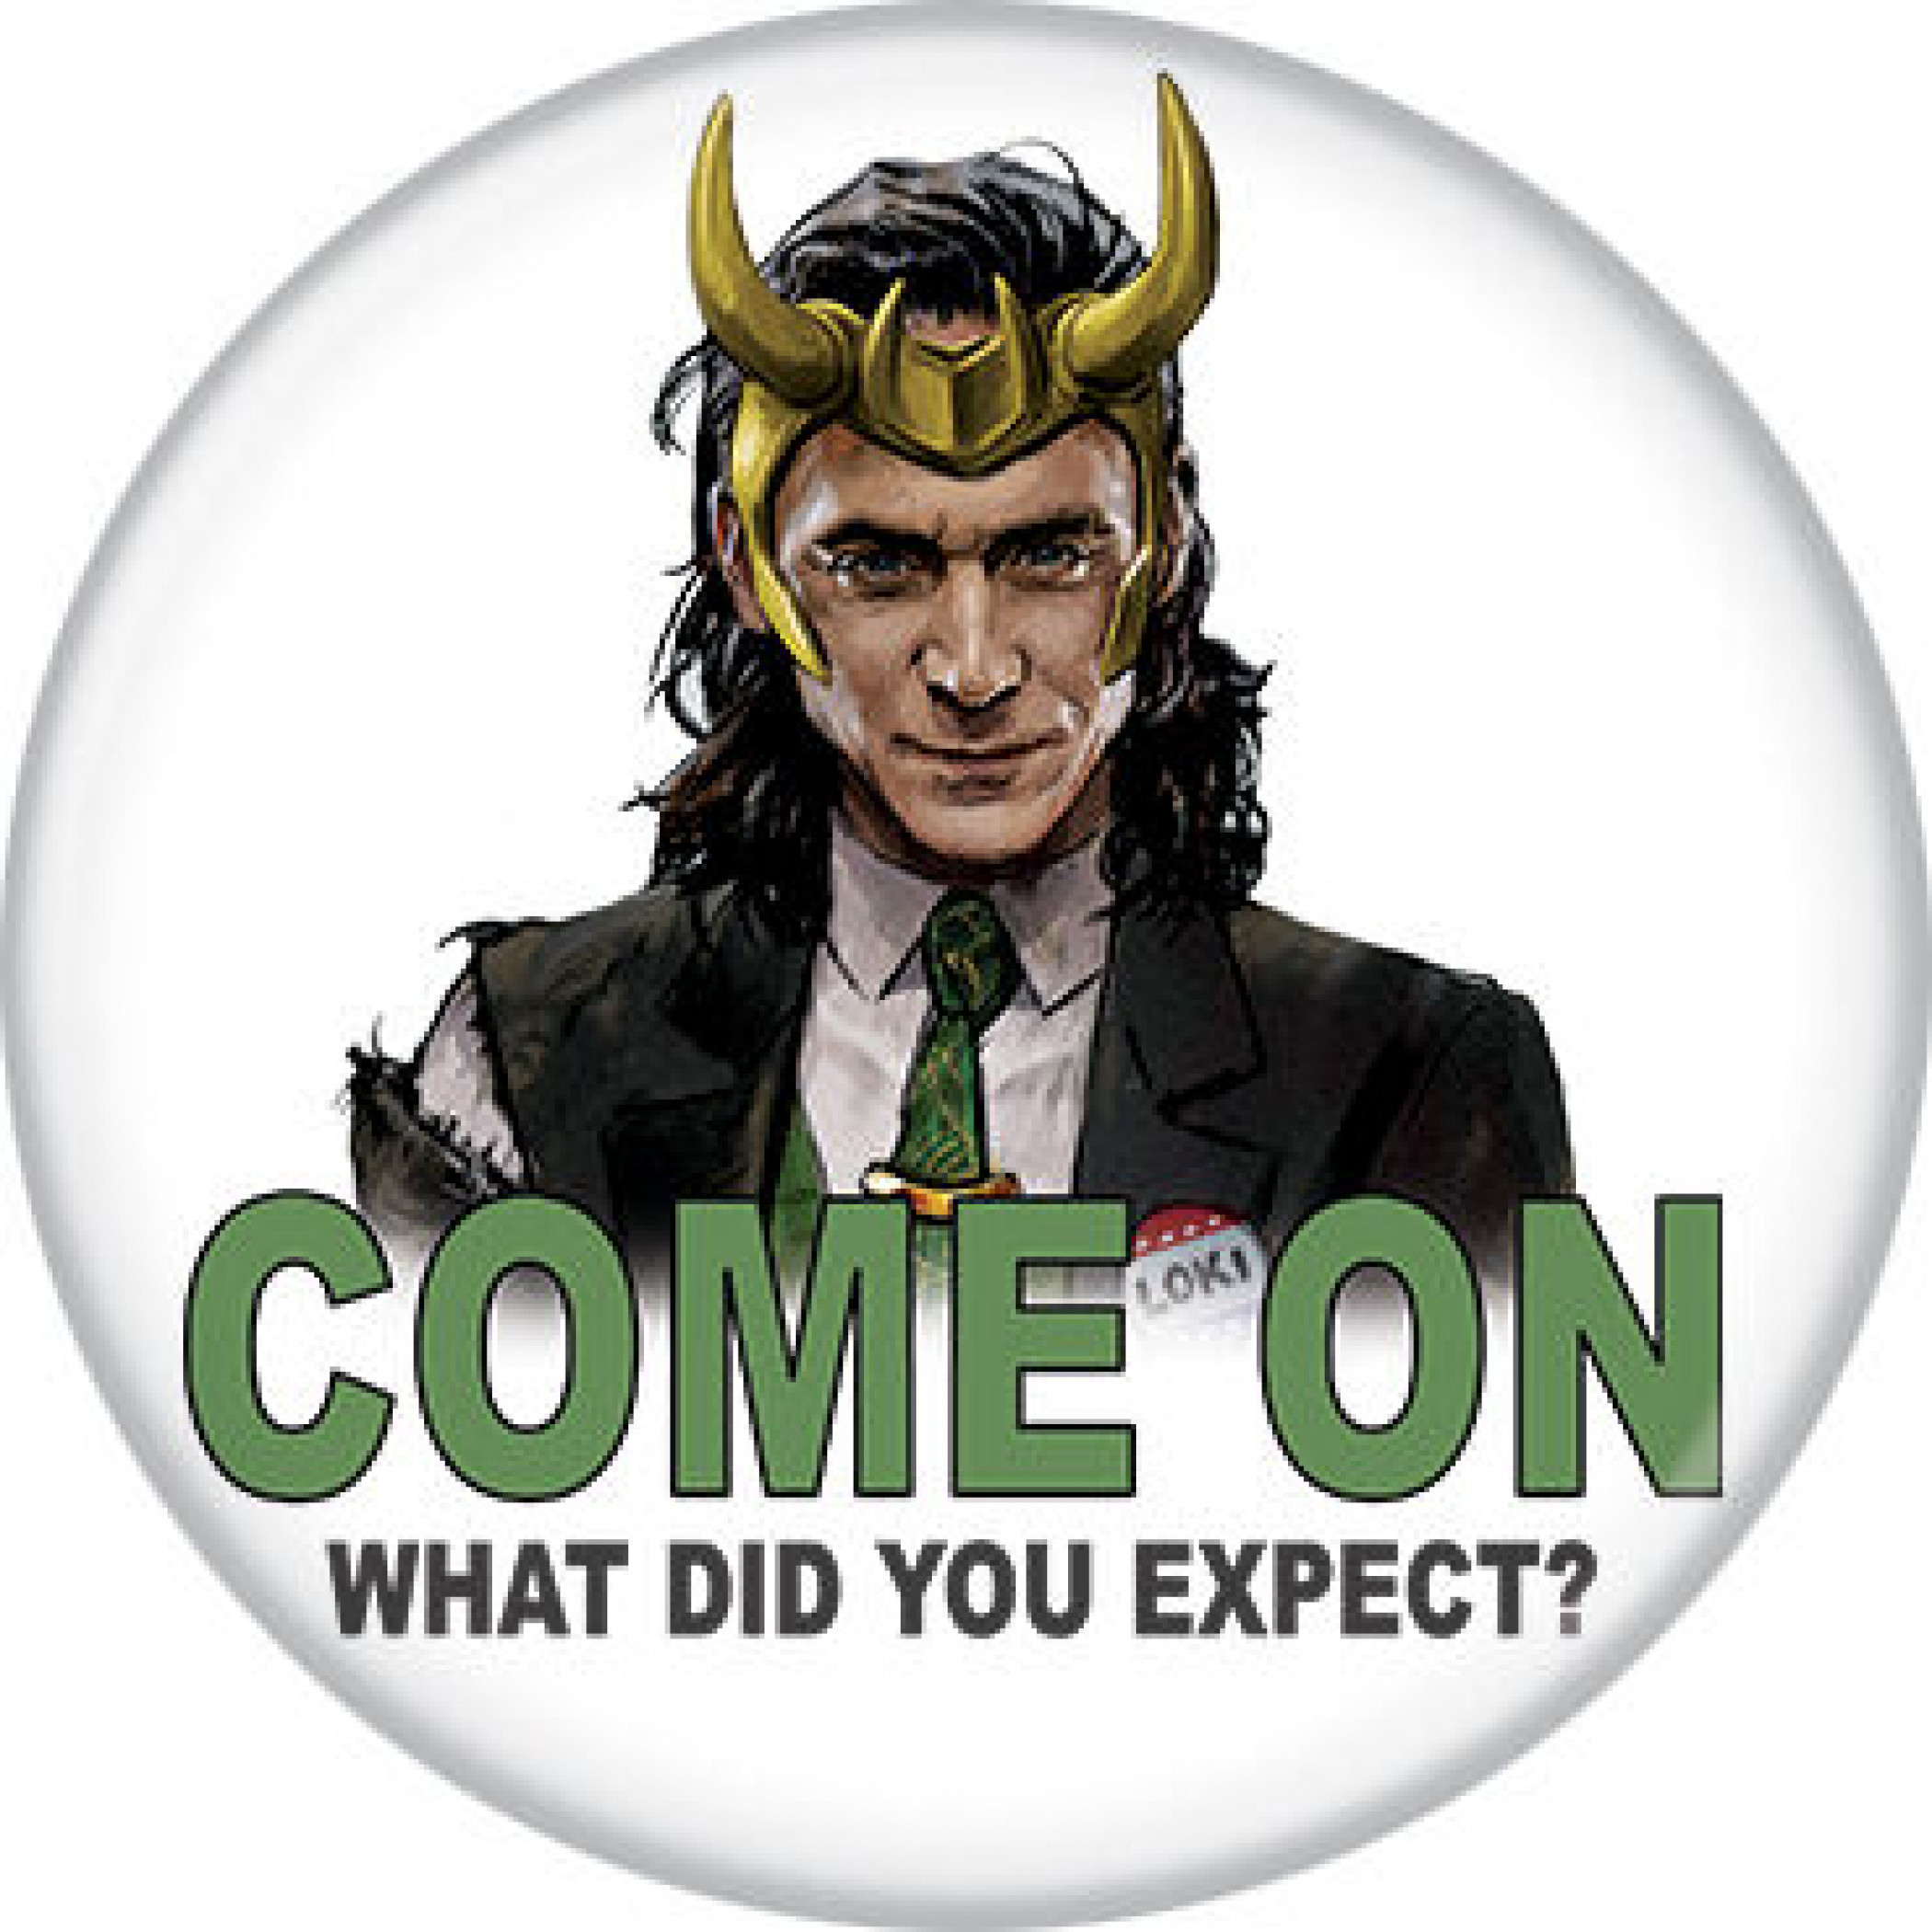 Marvel Studios Loki Series Come On What Did You Expect? Button